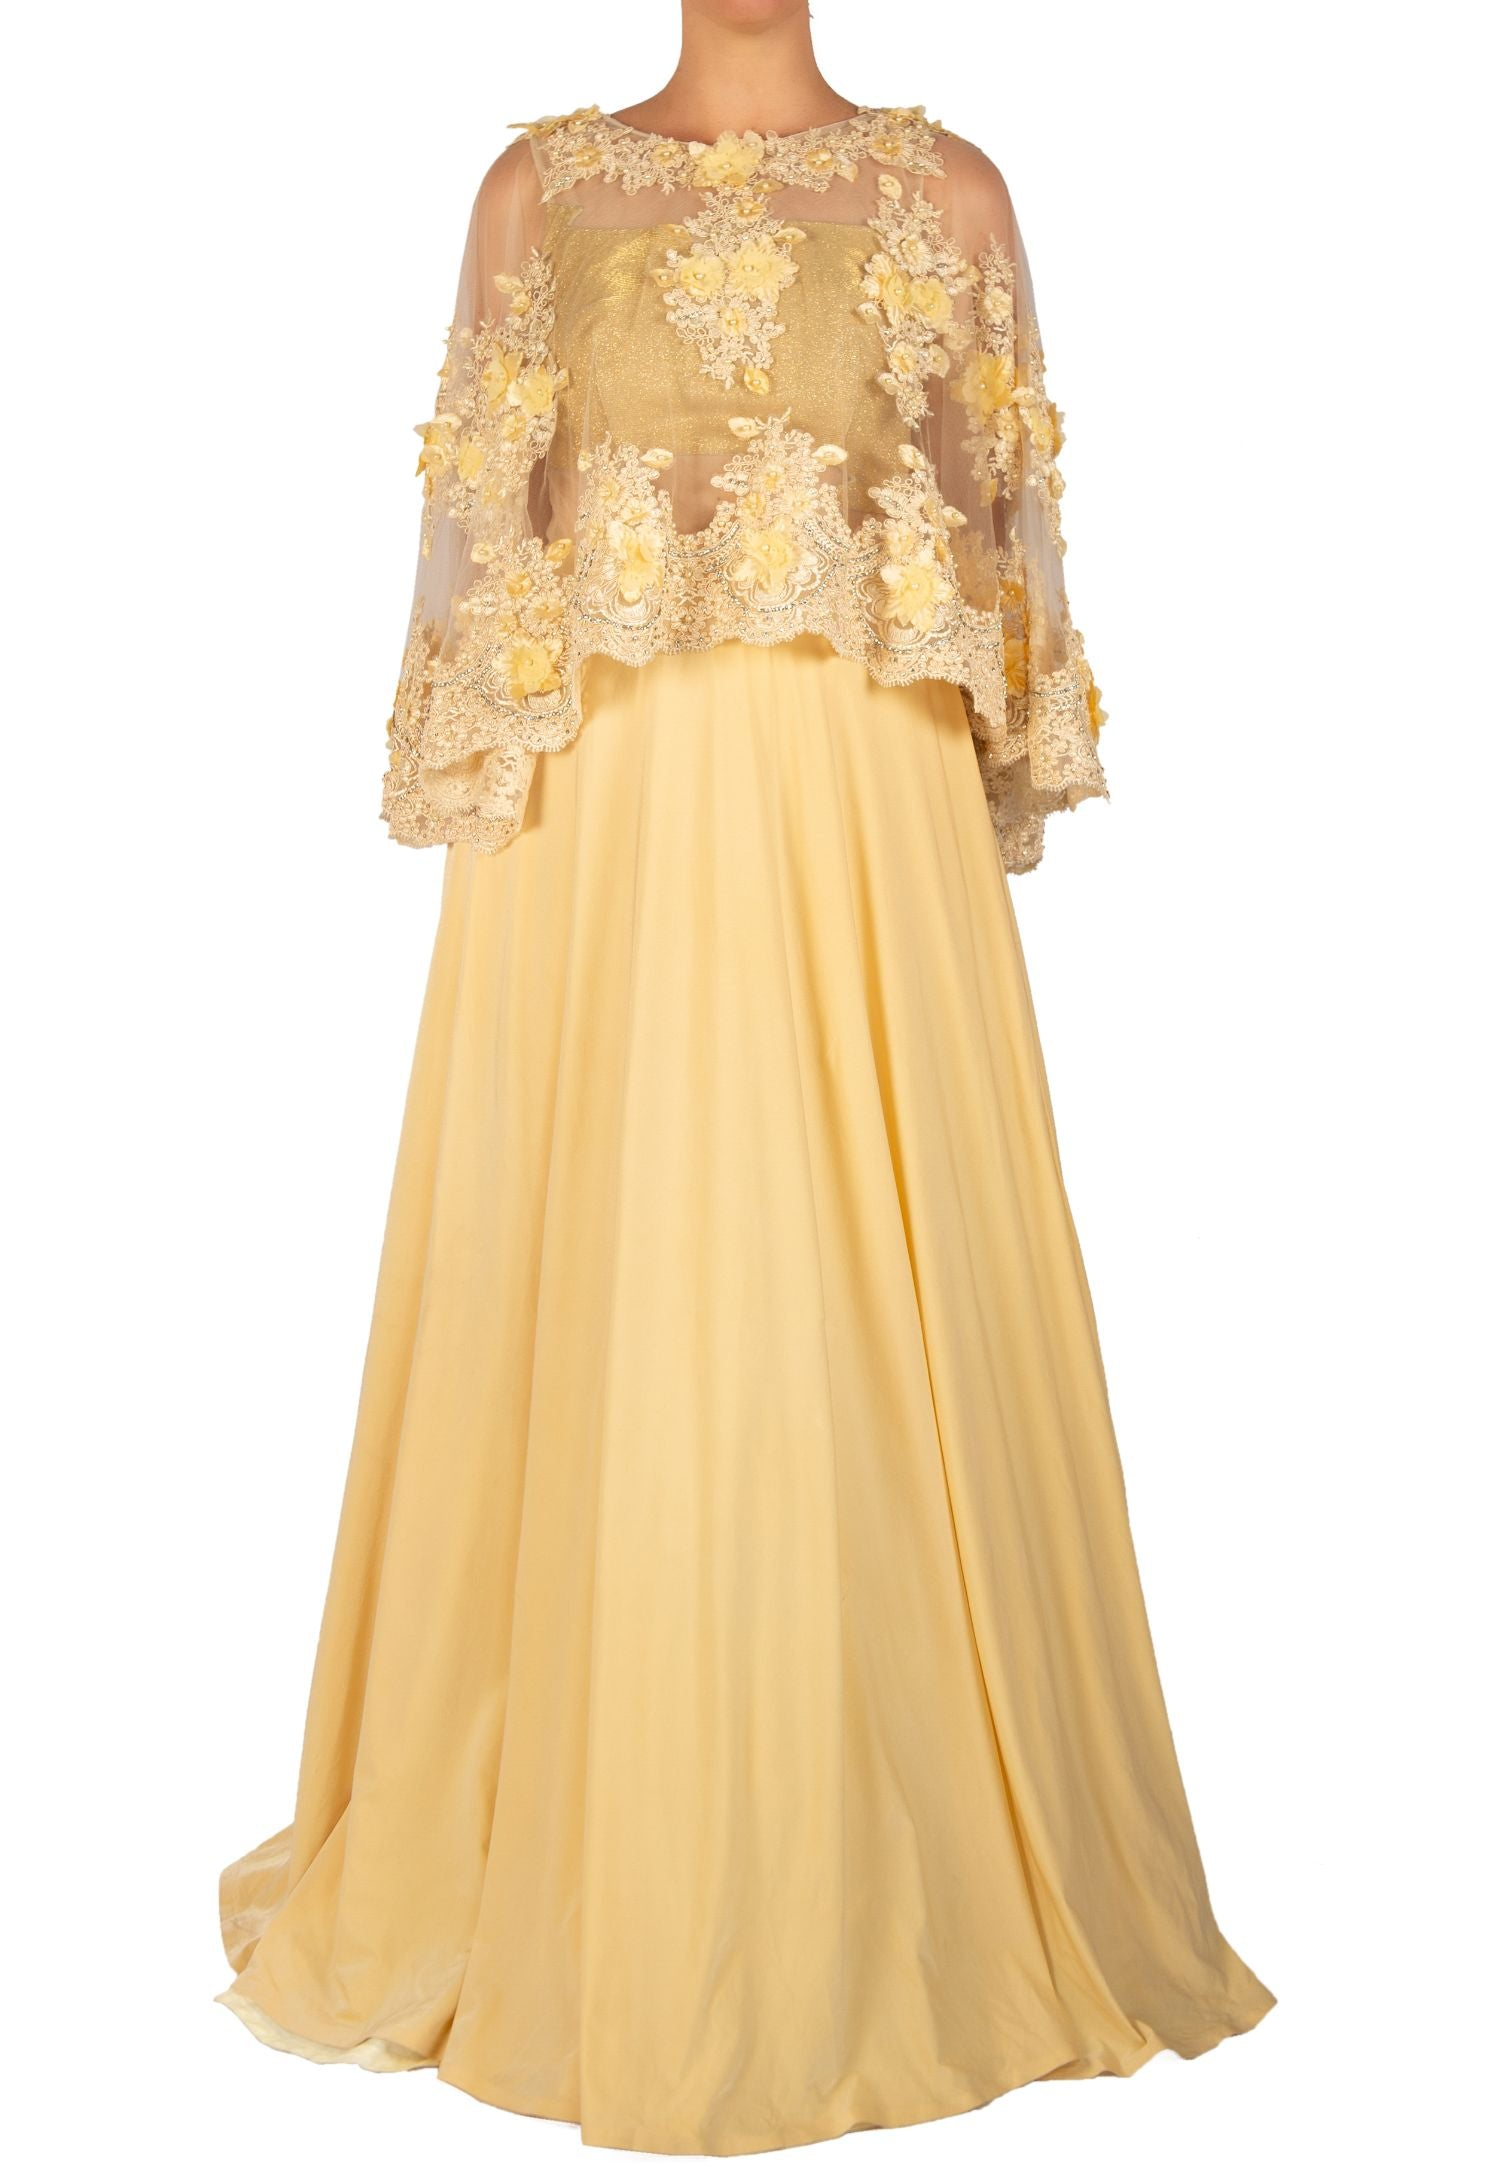 YELLOW GOWN WITH A NET CAPE TOP